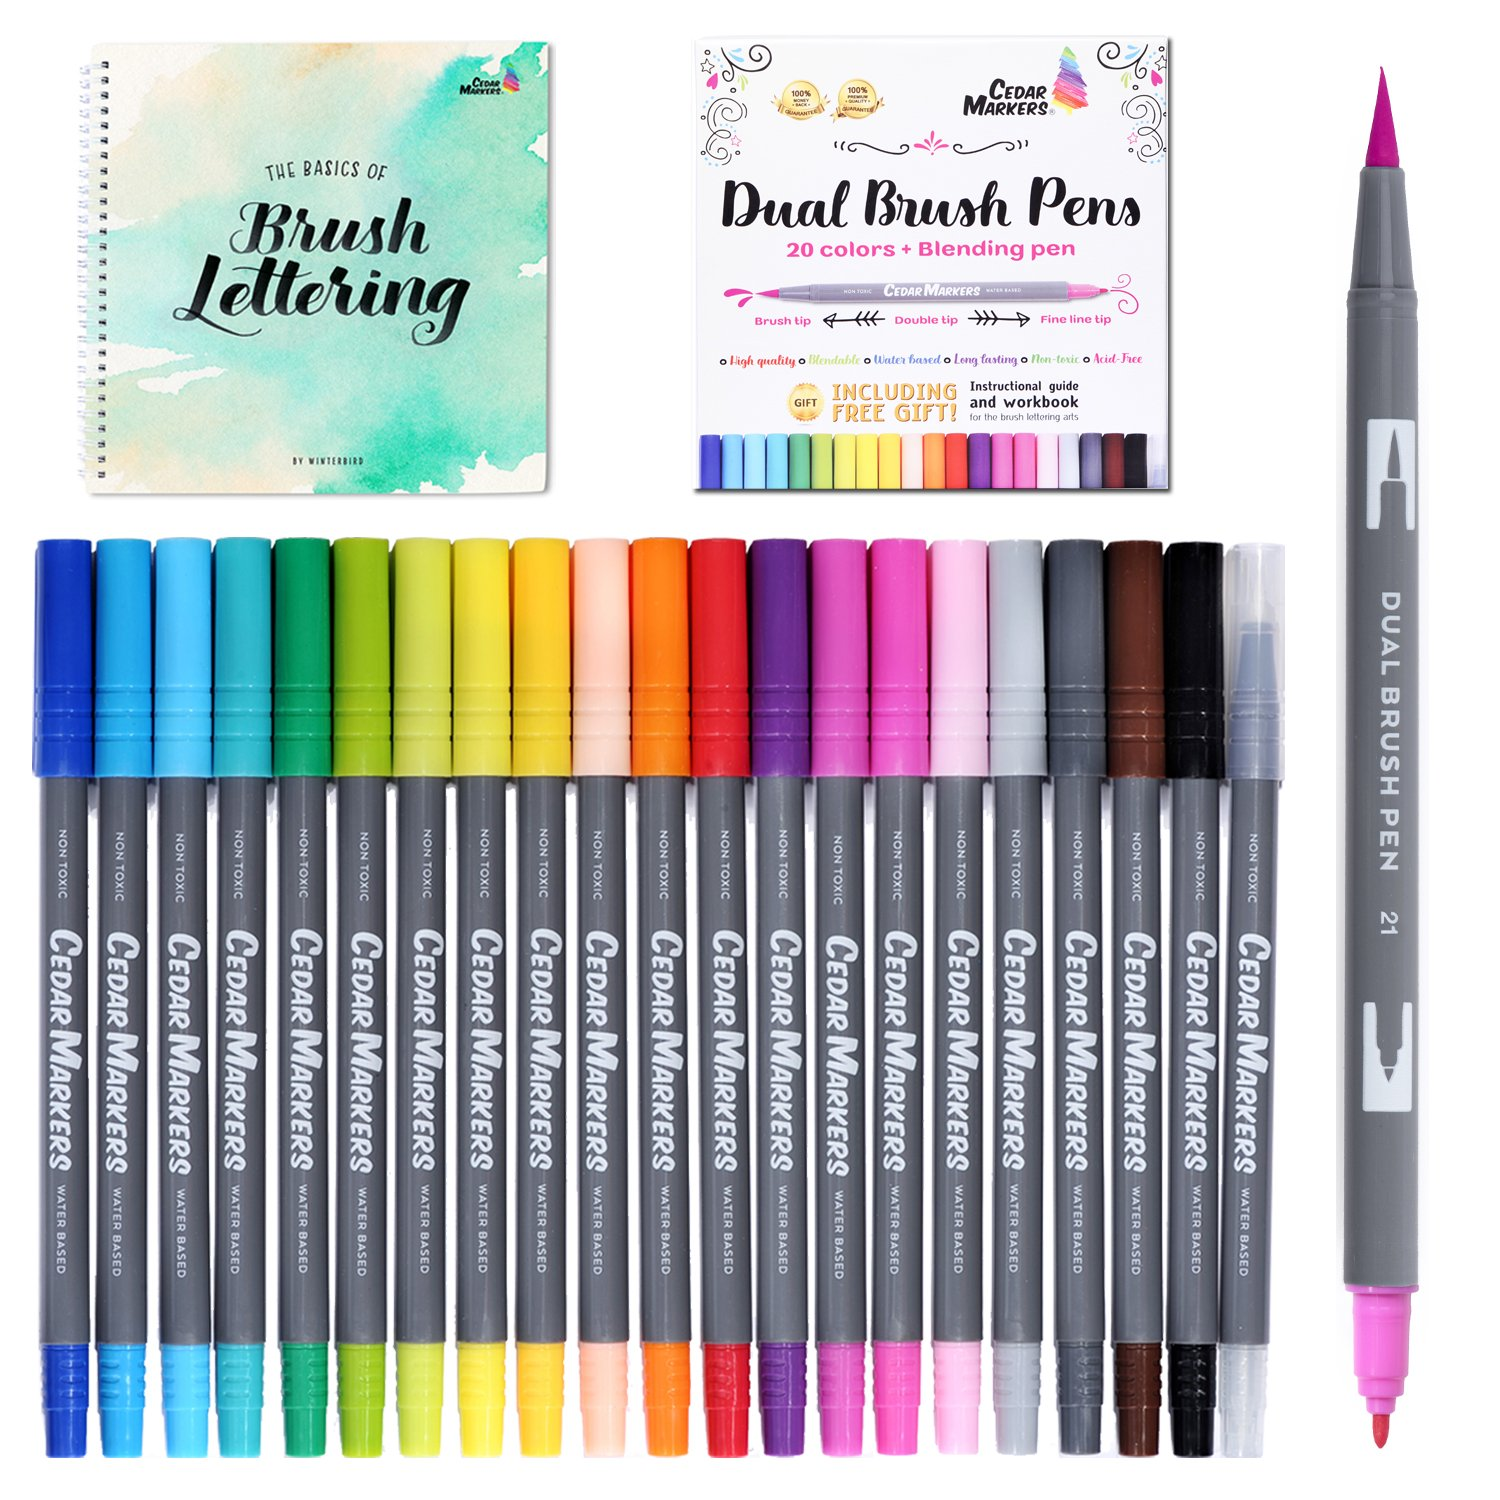 Cedar Markers Dual Brush Pens. 21 Calligraphy Pen Set with Free Hand Lettering Guide Book. Fine Liner and Brush Tip Markers. Colored Pens, Art Pens for Adult Coloring Book and Bullet Journal. (21 XL) by Cedar Markers (Image #1)